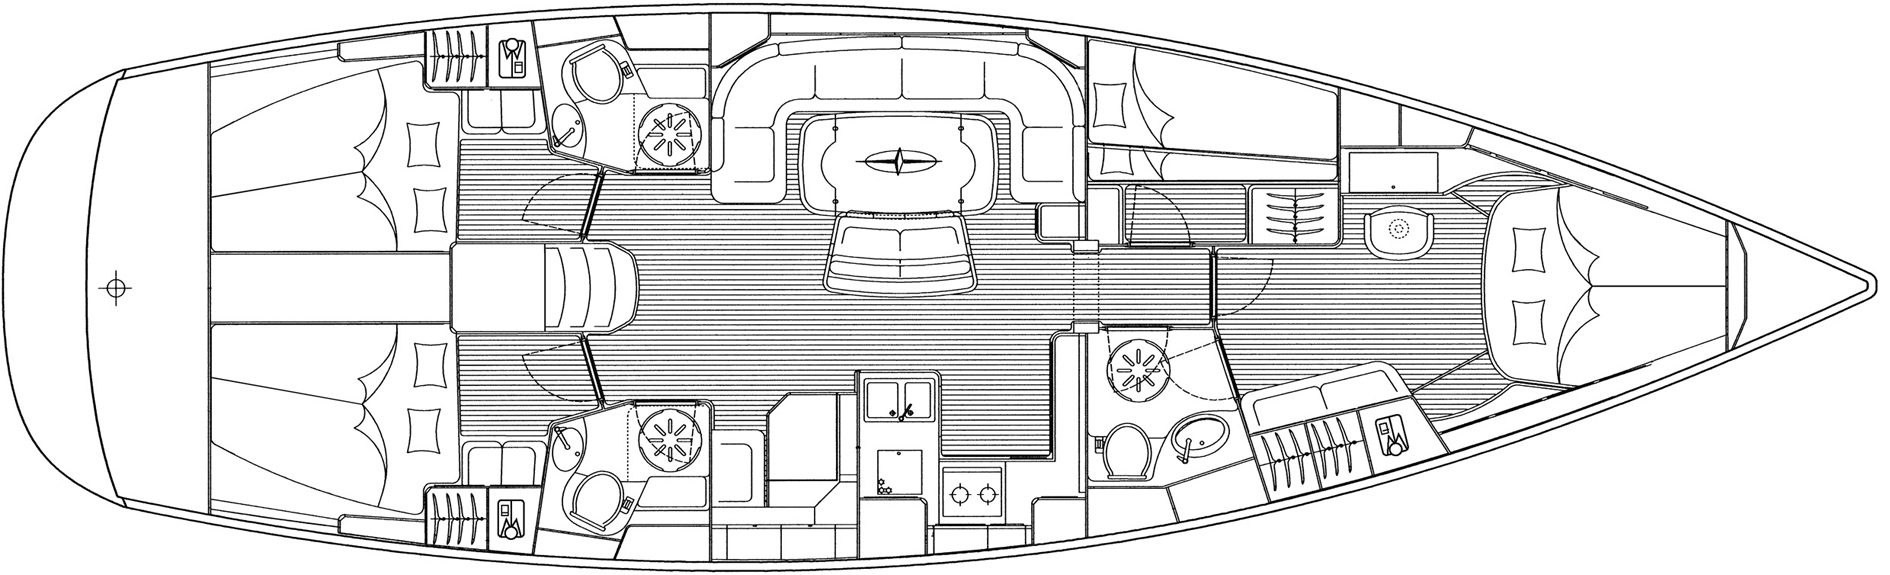 Plan of a bareboat yacht charter being used for accommodation in venice at christmas